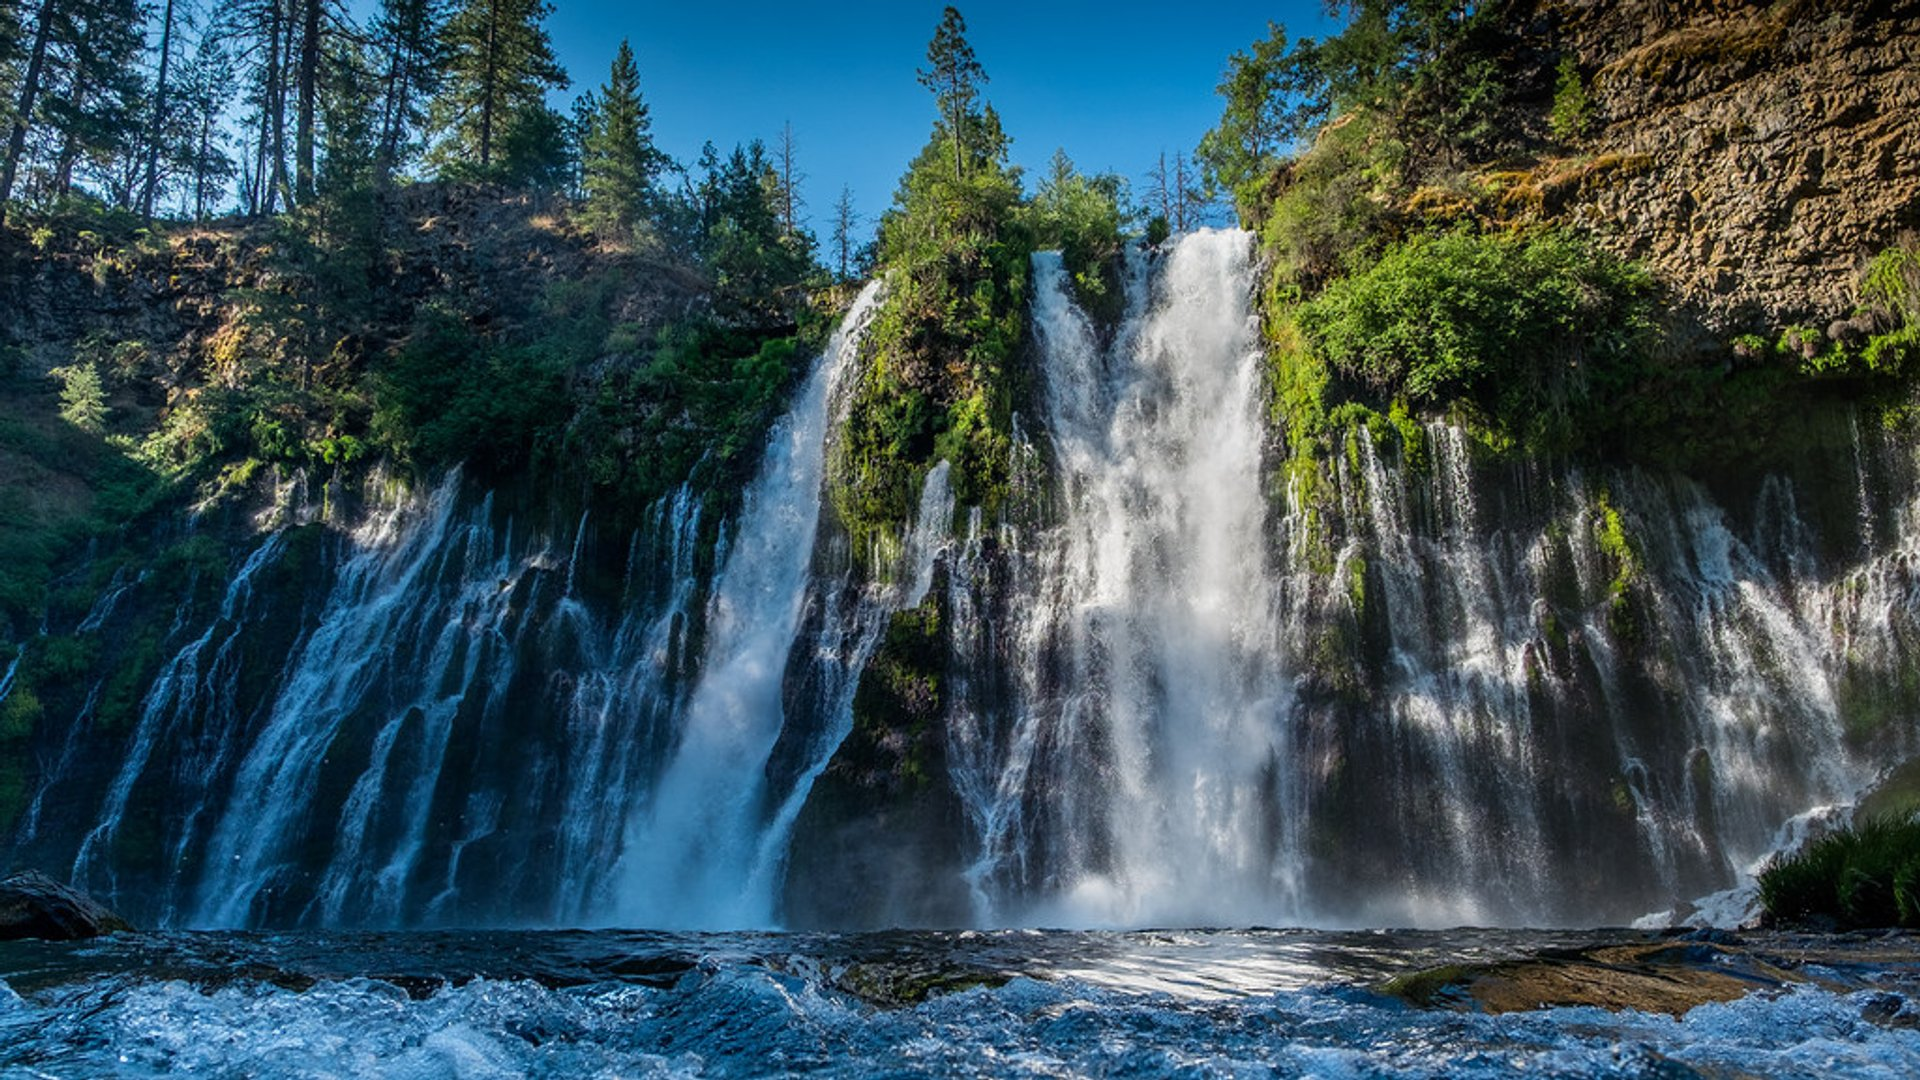 Best time to see Burney Falls in California 2020